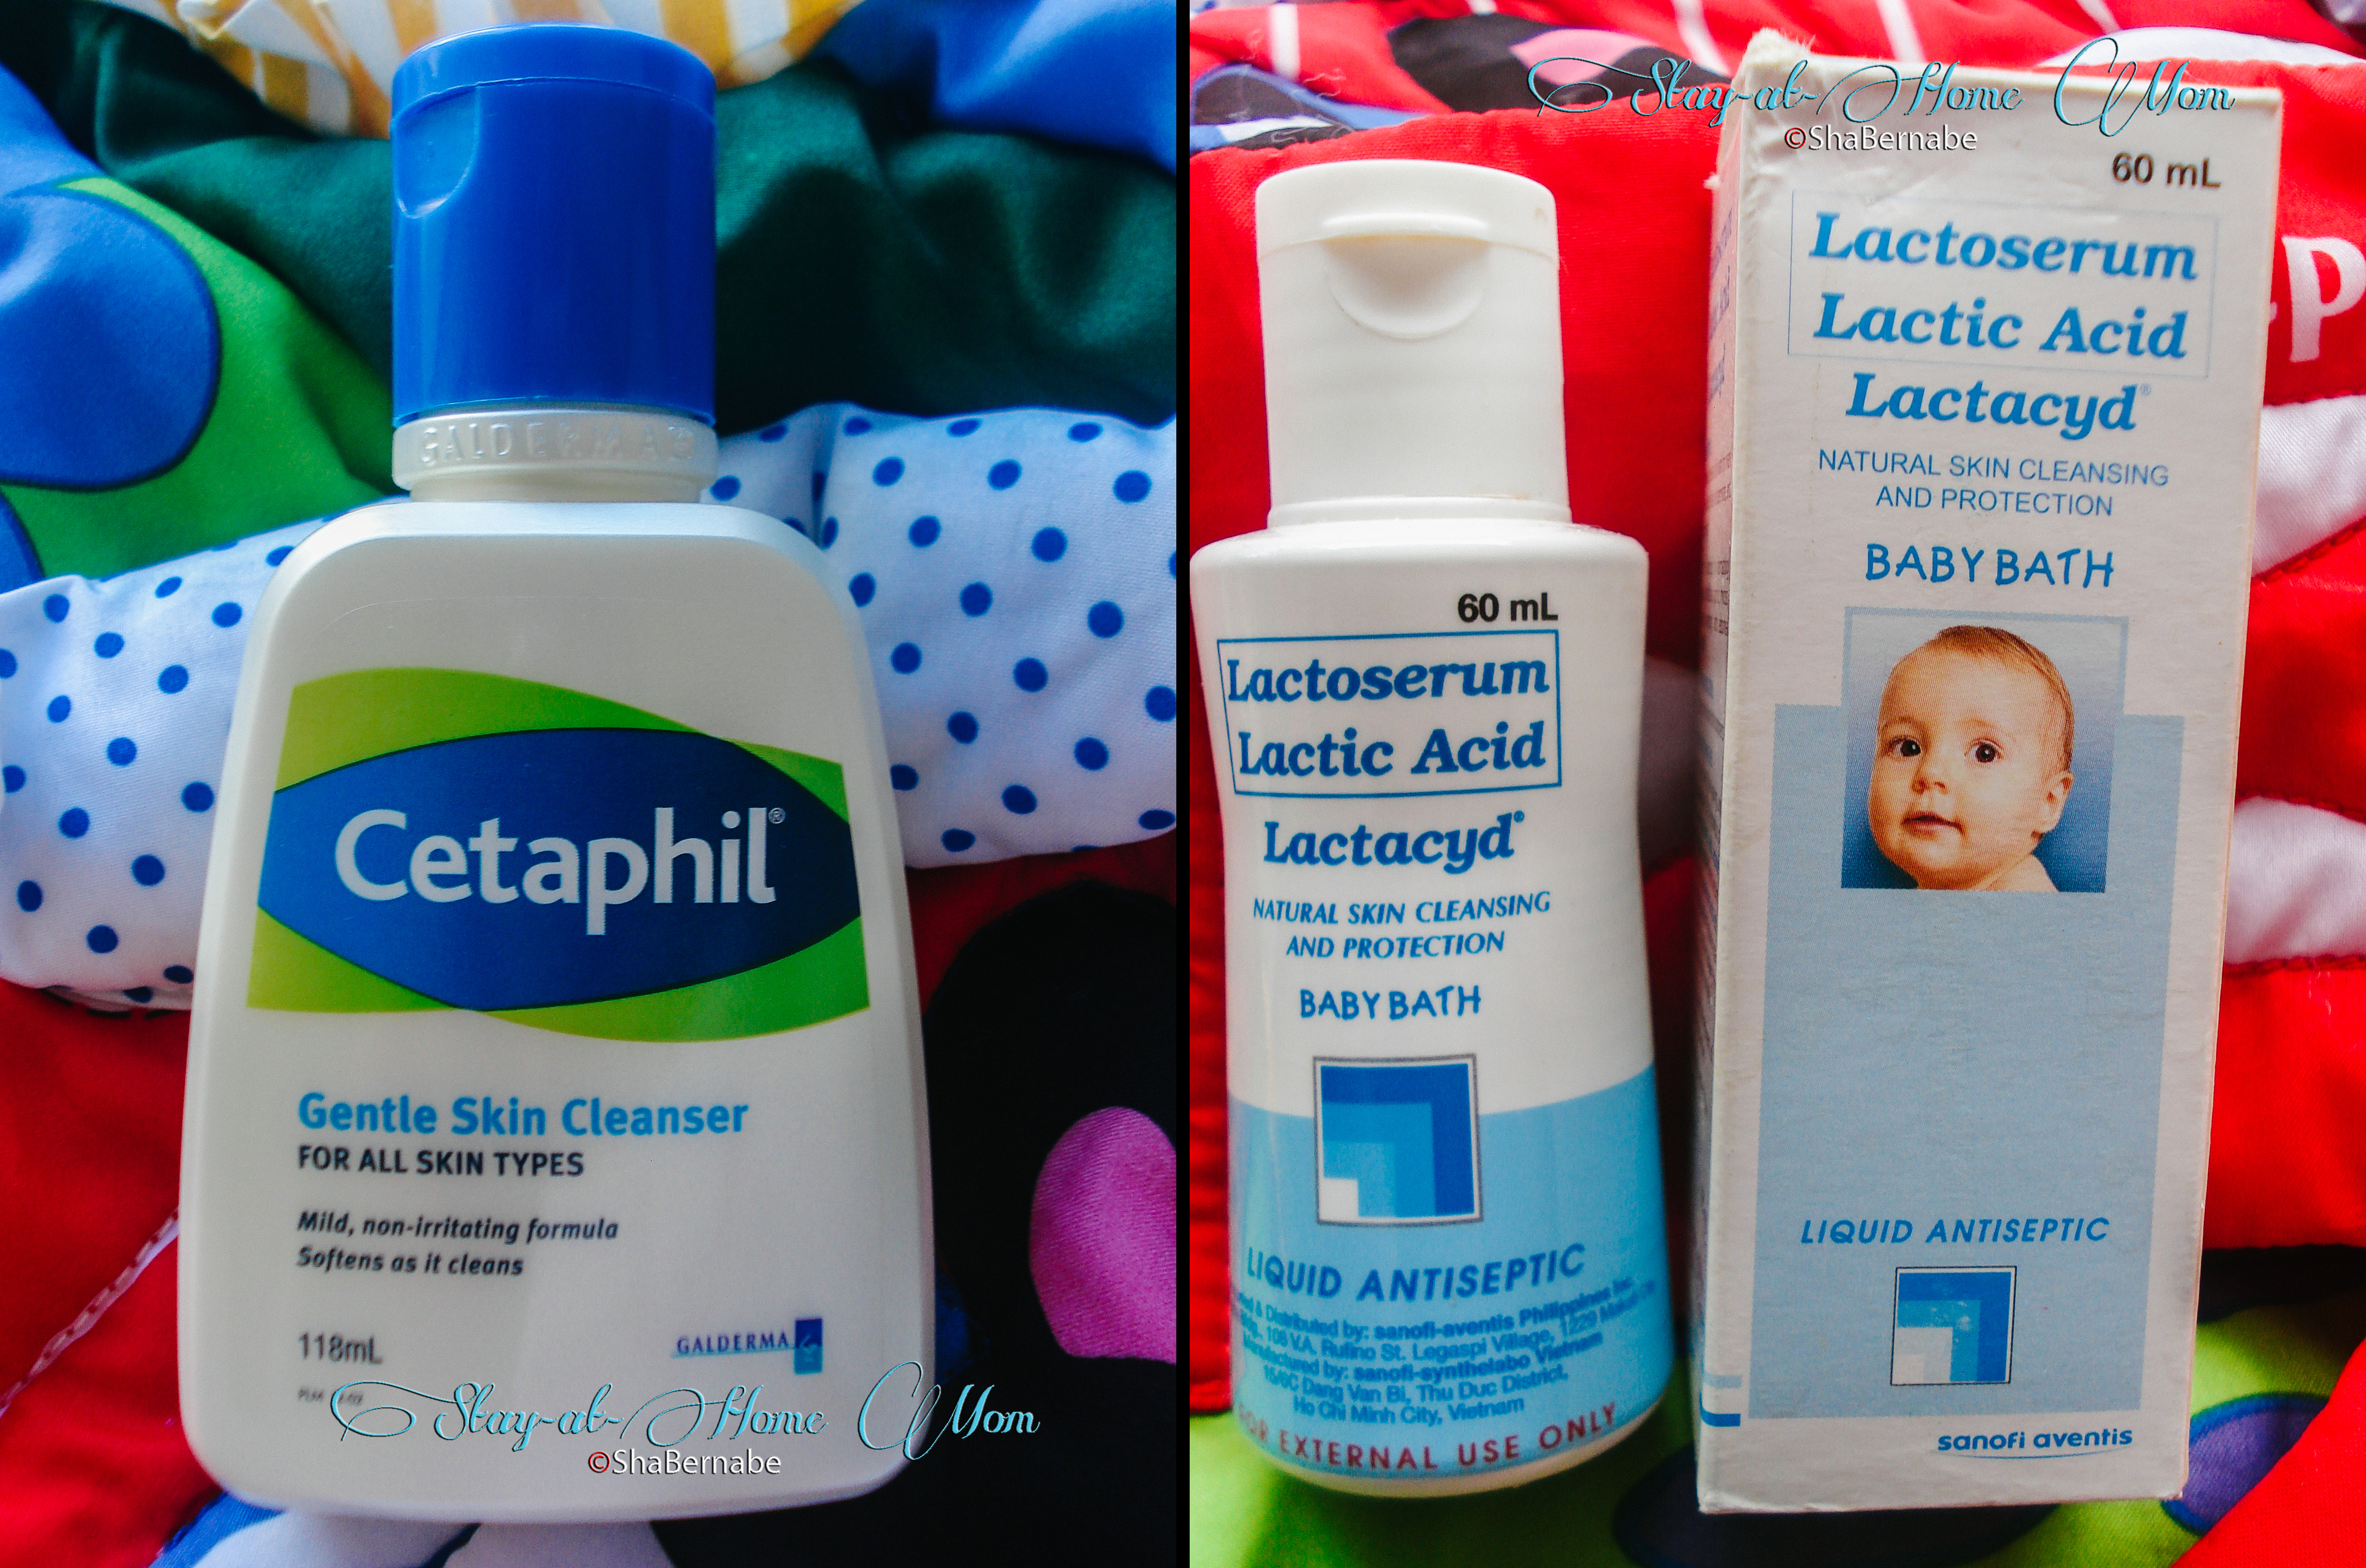 Baby Wash: Cetaphil Gentle Skin Cleanser Vs Lactacyd Baby Bath   Stayathome Mom